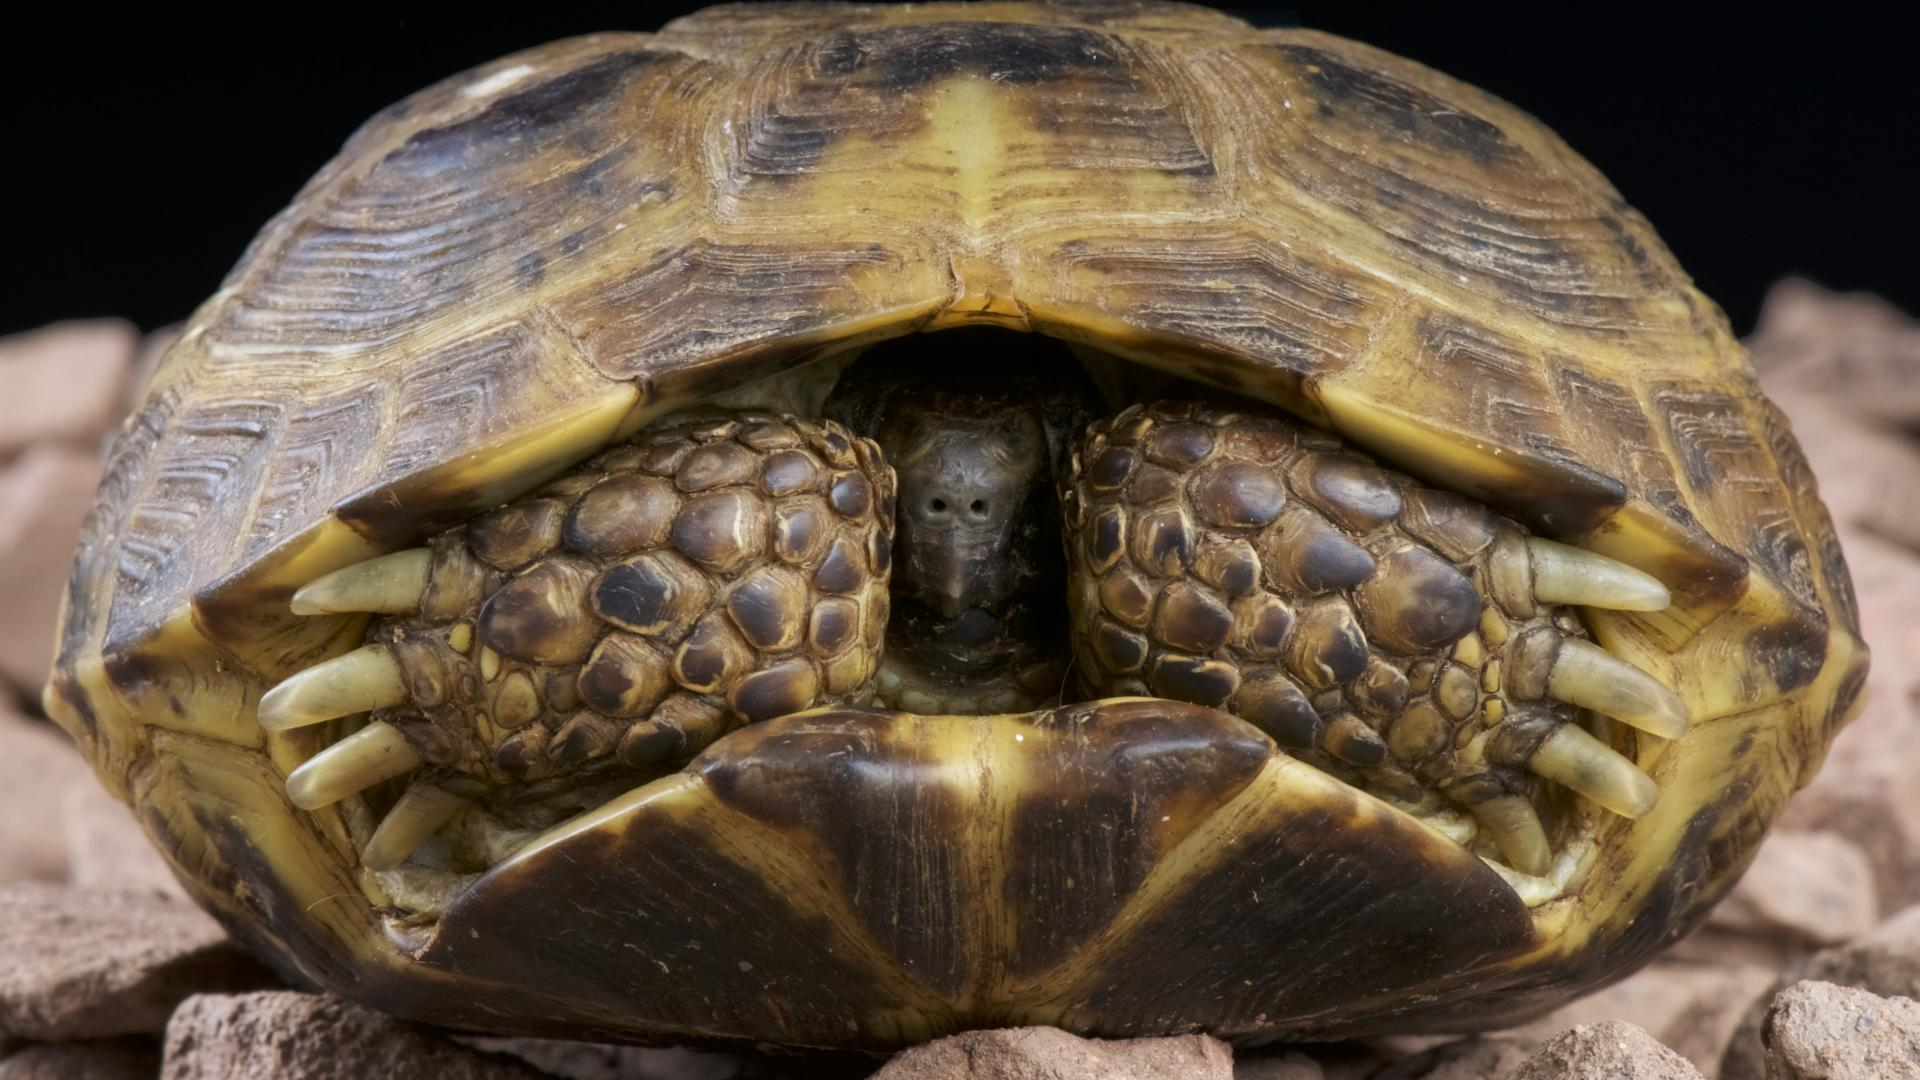 Tortue des steppes (Agrionemys horsfieldii) dans sa carapace